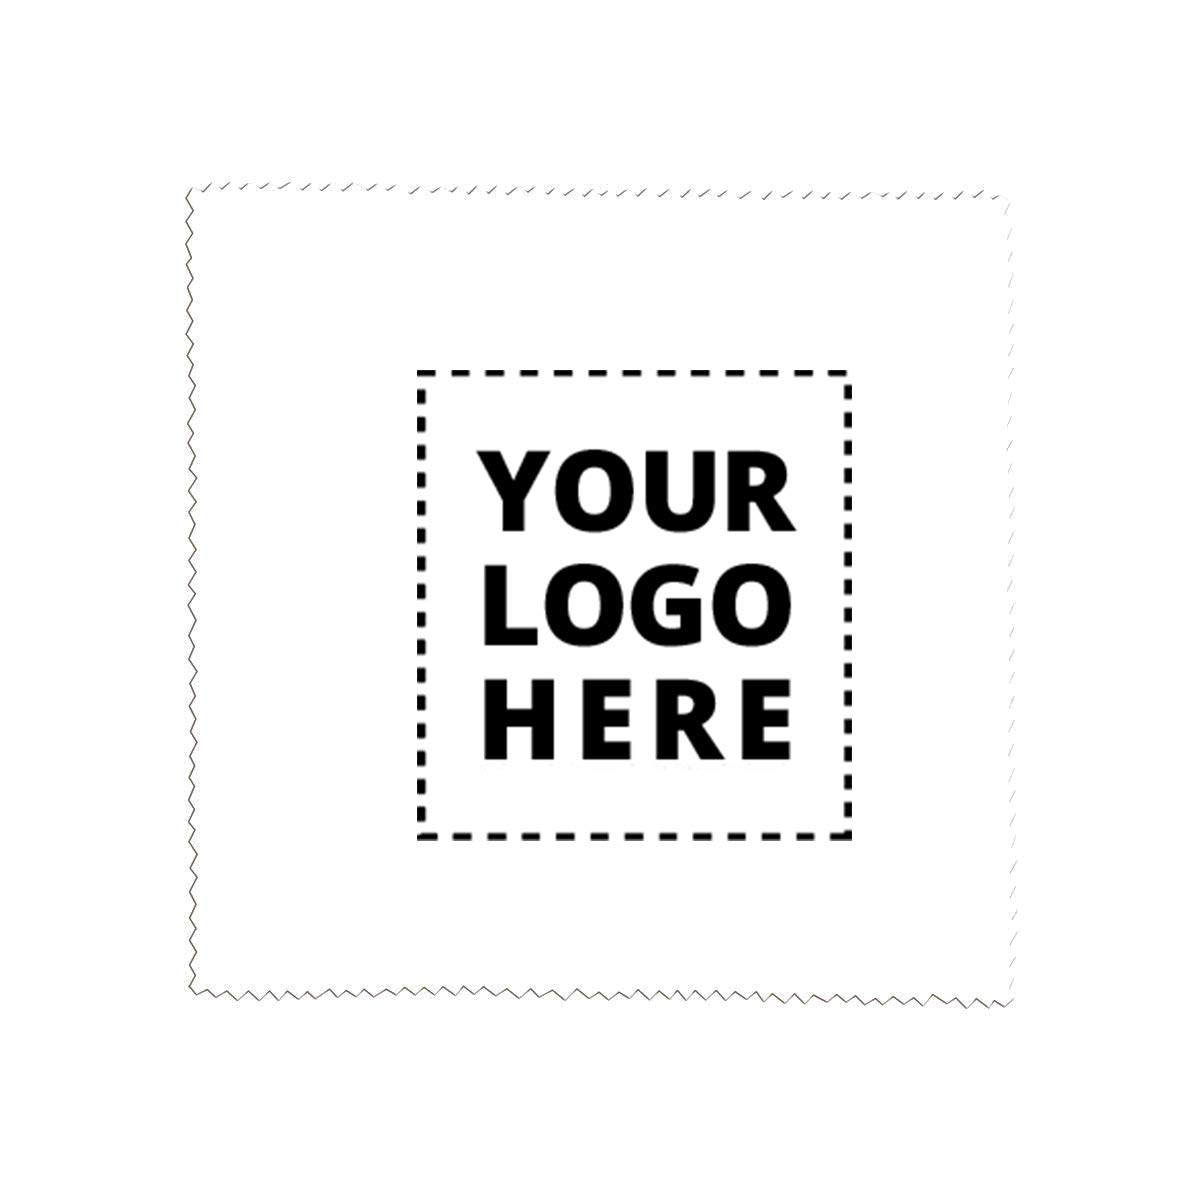 Microfiber Cleaning Cloths - 6'' x 6'' - 250 Qty - 1.78 Each - Promotional Product Imprinted & Personalized Bulk with Your Custom Logo White